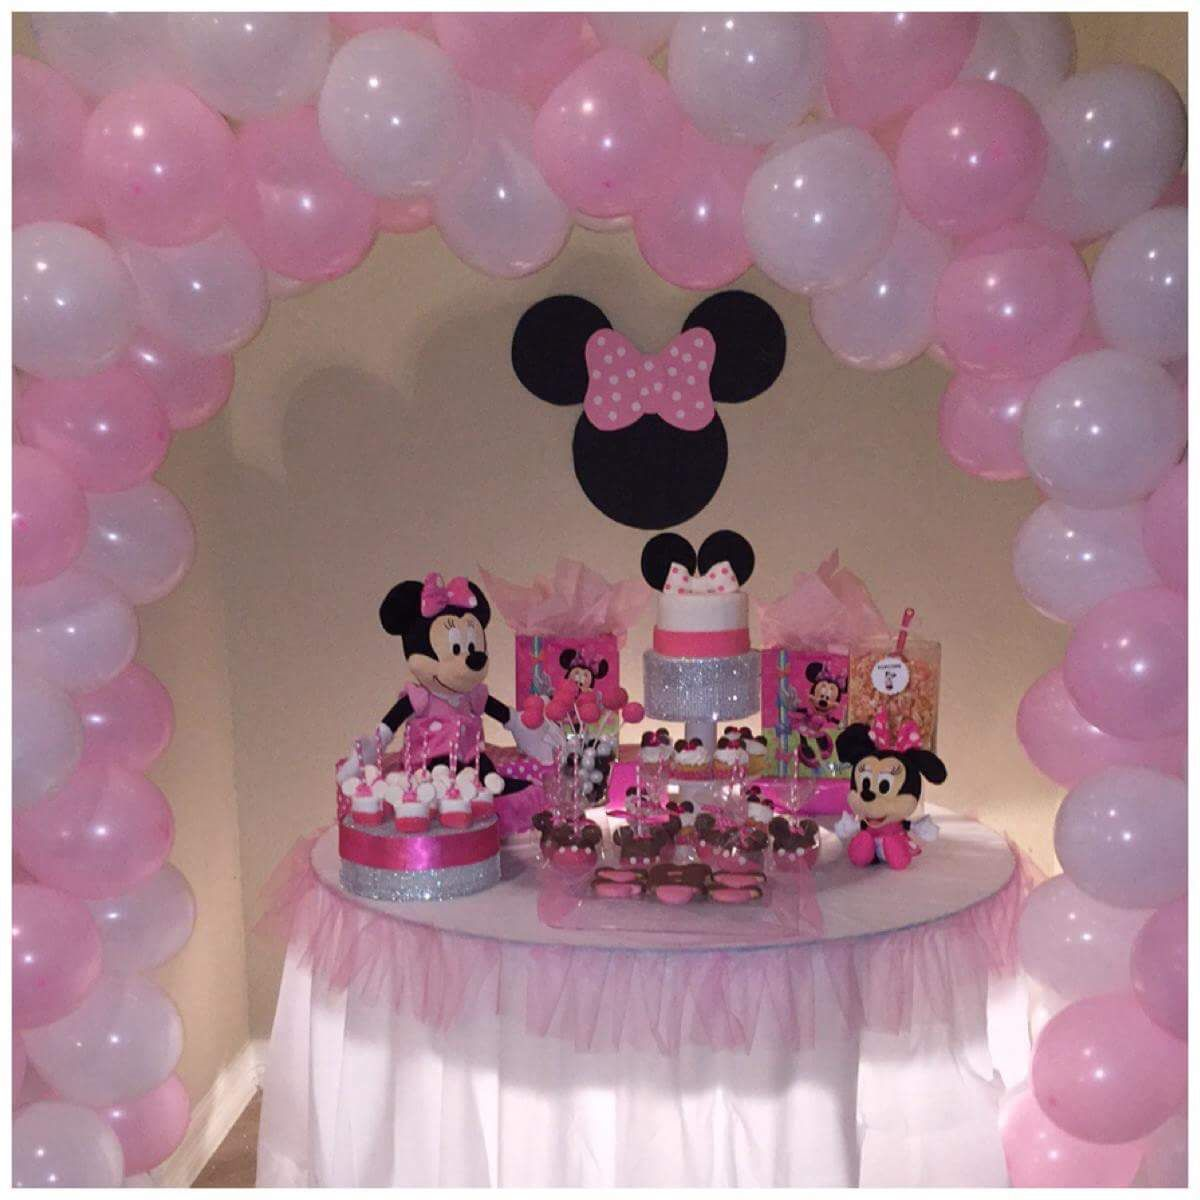 Minnie Mouse Party Table and Pink and White Balloon Arch by The